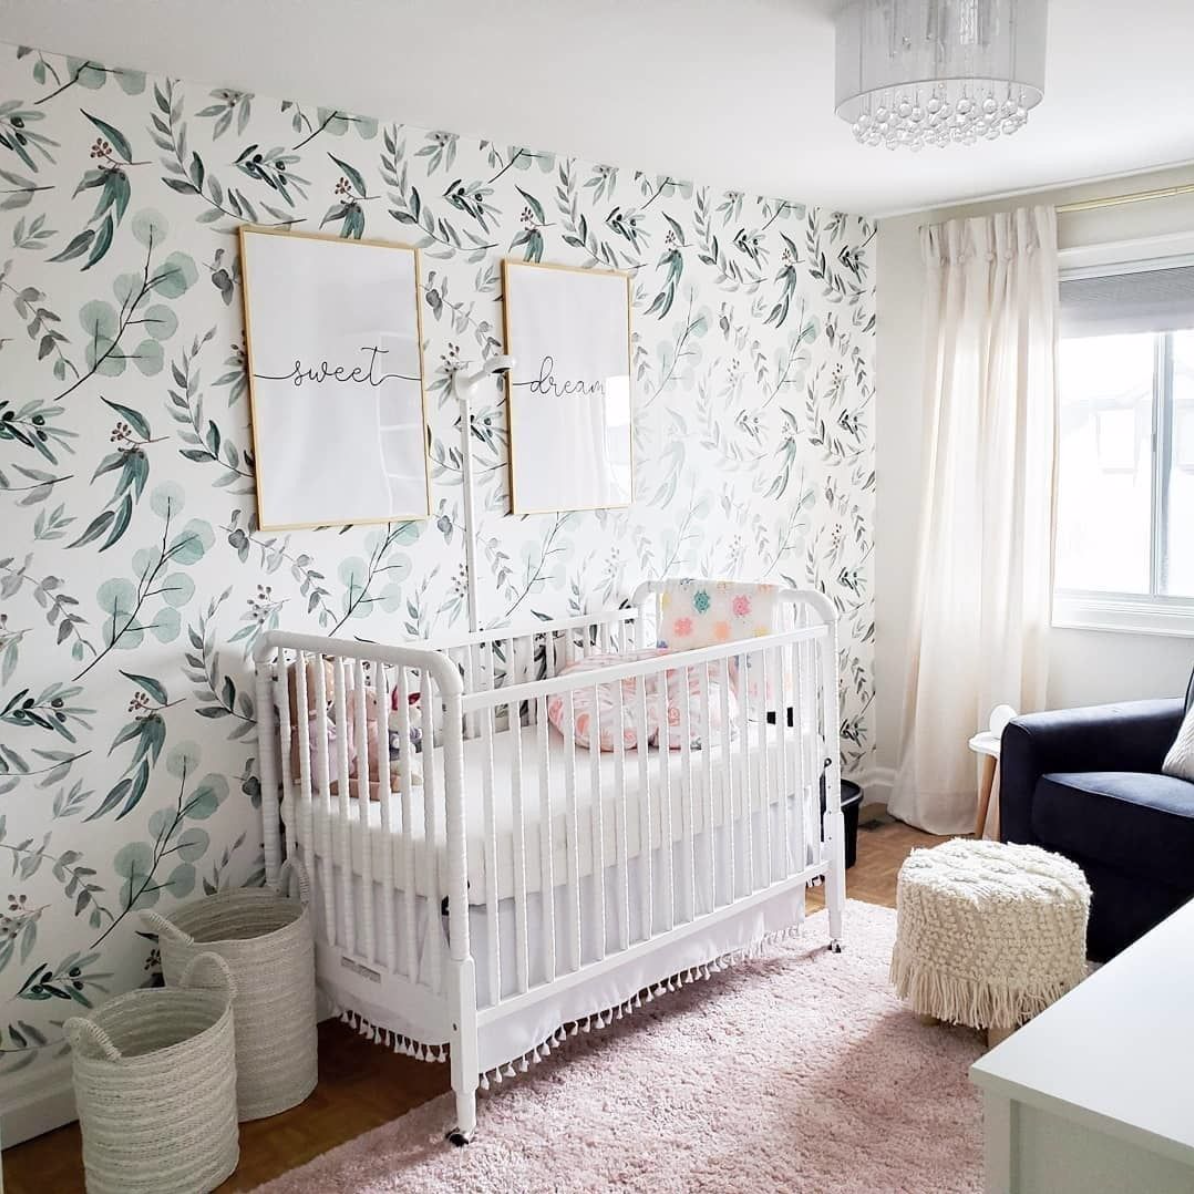 14 Nursery Trends and Childrens Design Ideas to Watch for 2020 1194x1194